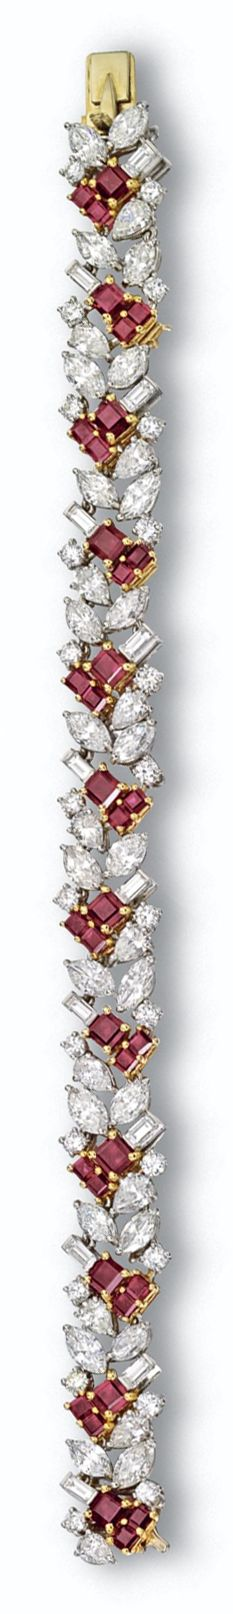 RUBY AND DIAMOND BRACELET, CARTIER. The stylized foliate motif set with 12 pear-shaped, 24 marquise-shaped, 24 round and 12 baguette diamonds weighing a total of approximately 16.20 carats, further accented with 36 square-cut rubies, mounted in platinum and gold, length 7 inches, signed Cartier, numbered 301.